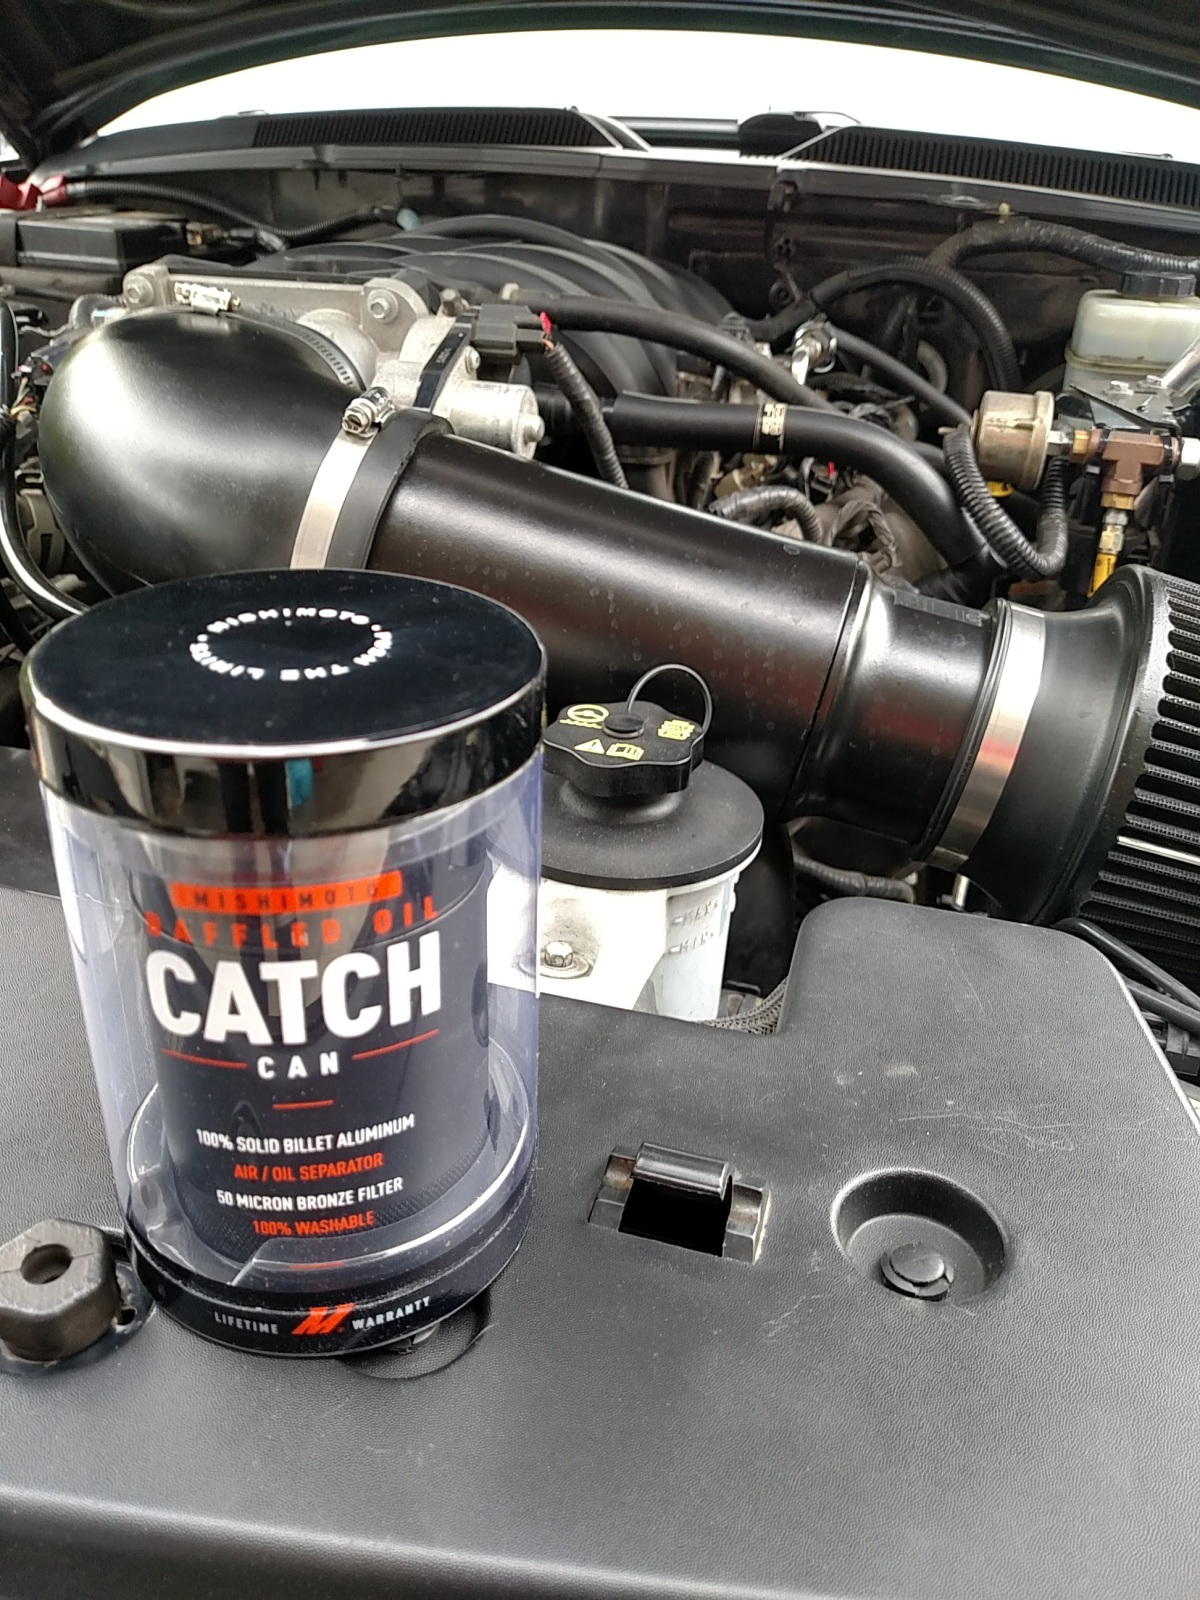 Mishimoto Catch Can Install and Review